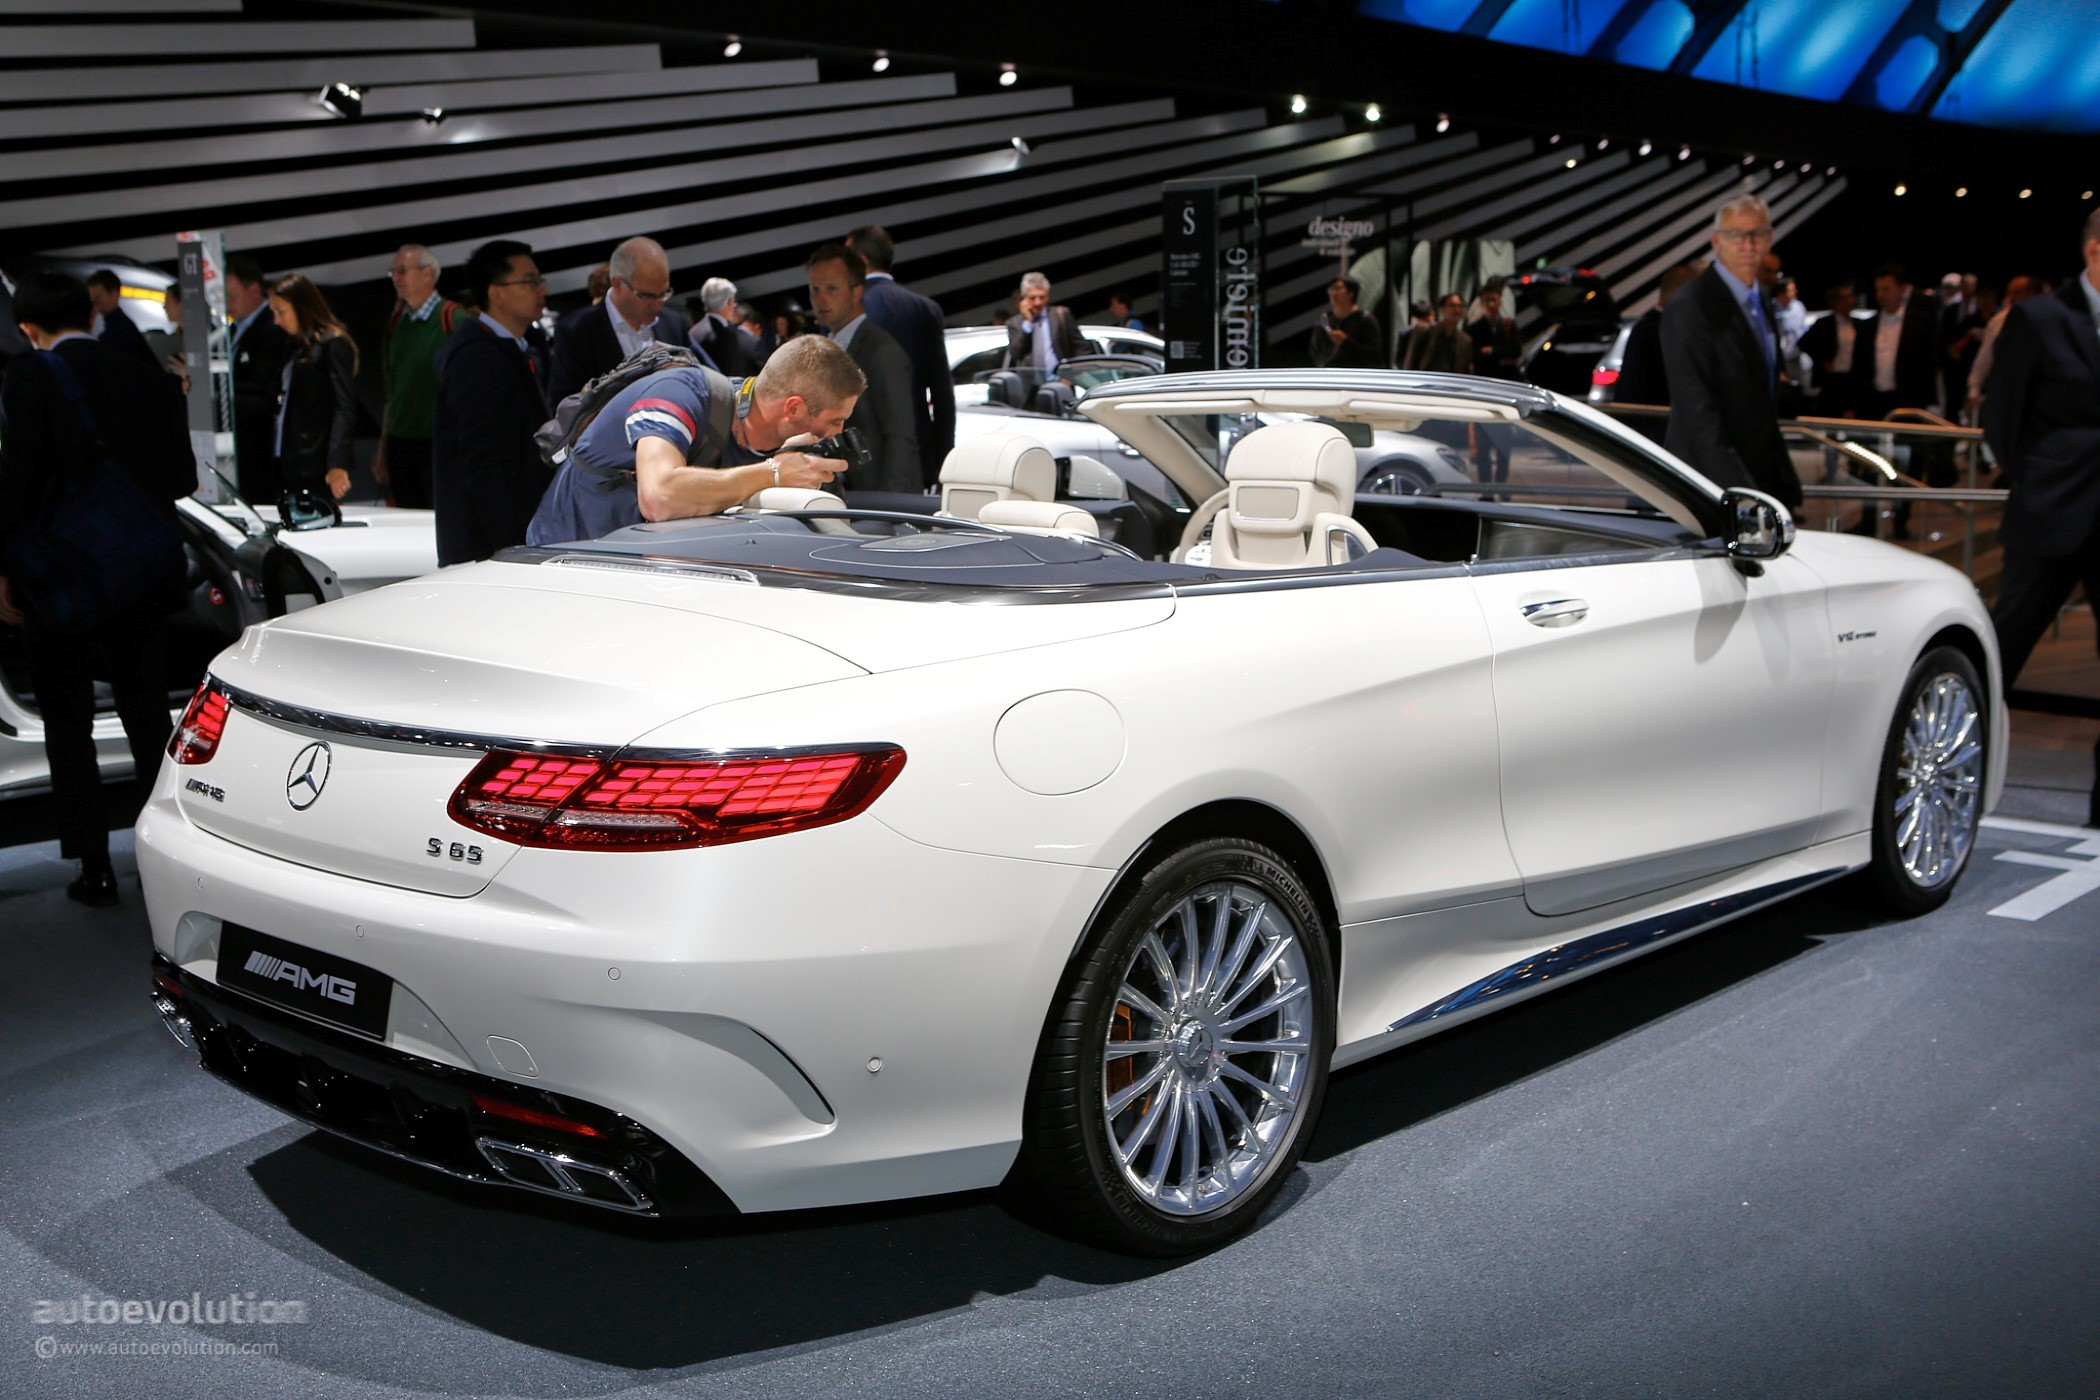 https://s1.cdn.autoevolution.com/images/news/gallery/2018-mercedes-benz-s-class-coupe-cabriolet-show-off-oled-taillights-in-frankfur_20.jpg